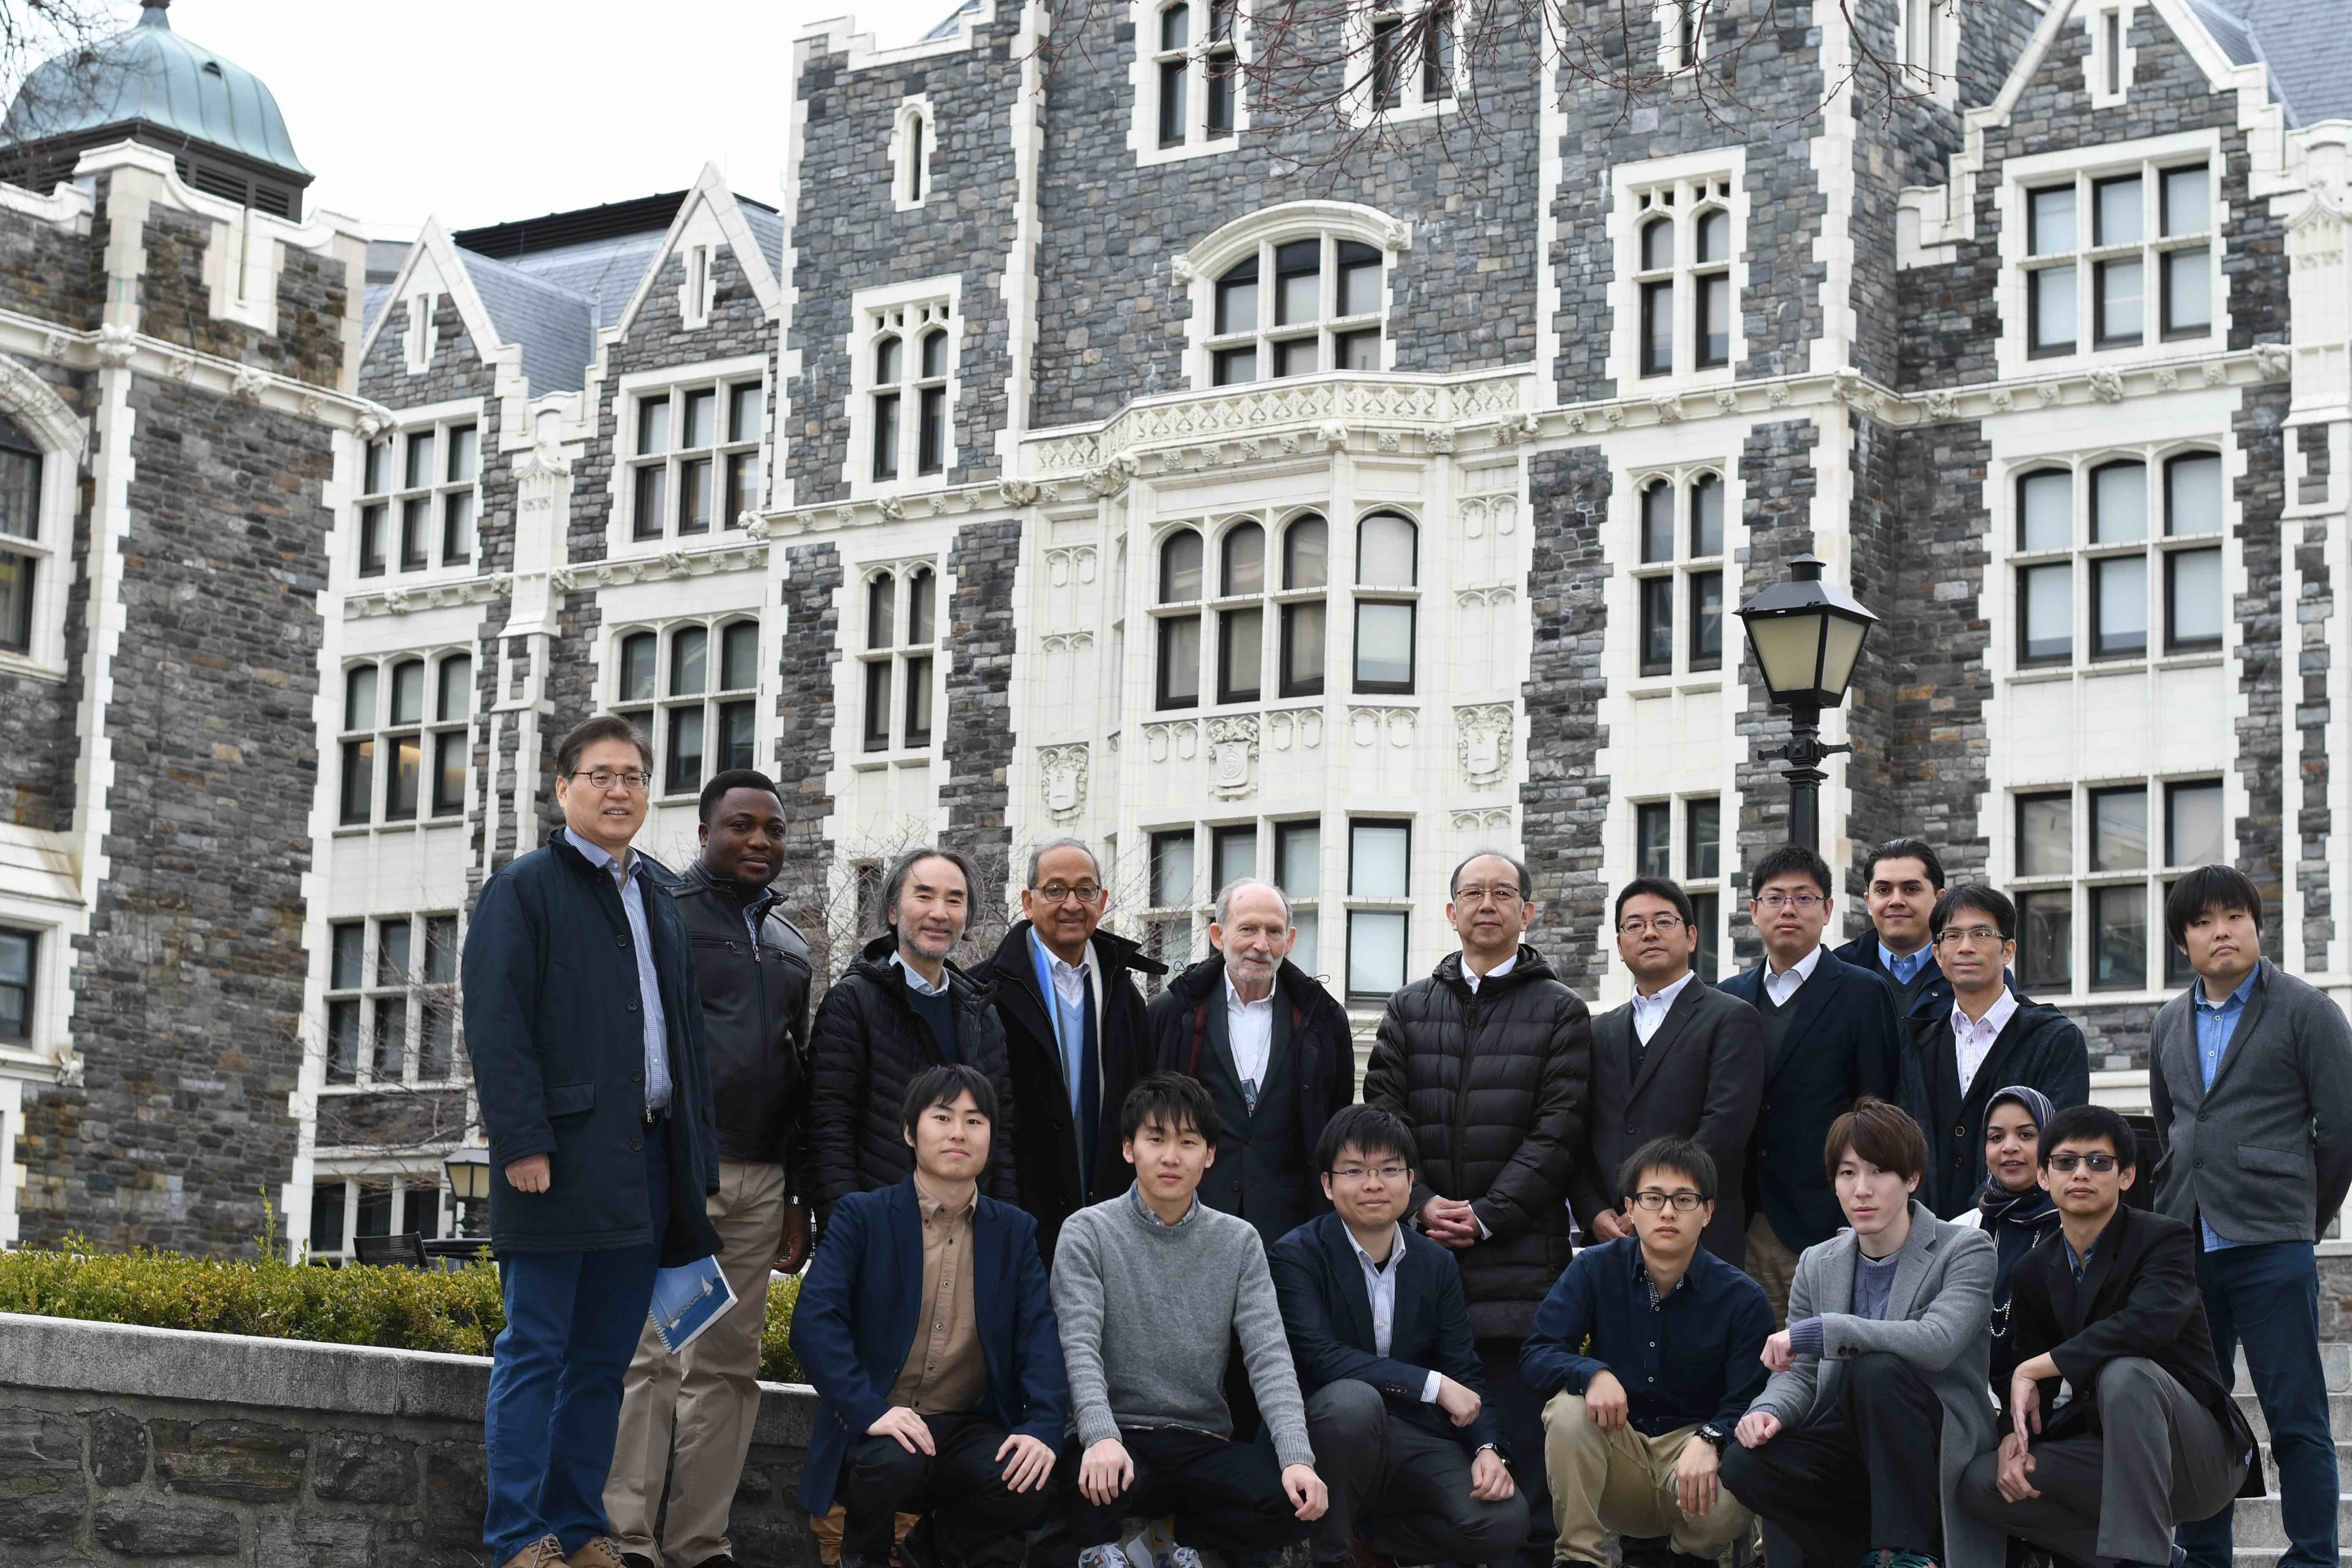 The Kyutech of Japan and CCNY of USA teams during their regular annual workshop meeting at CCNY under NSF Grant JUNO2